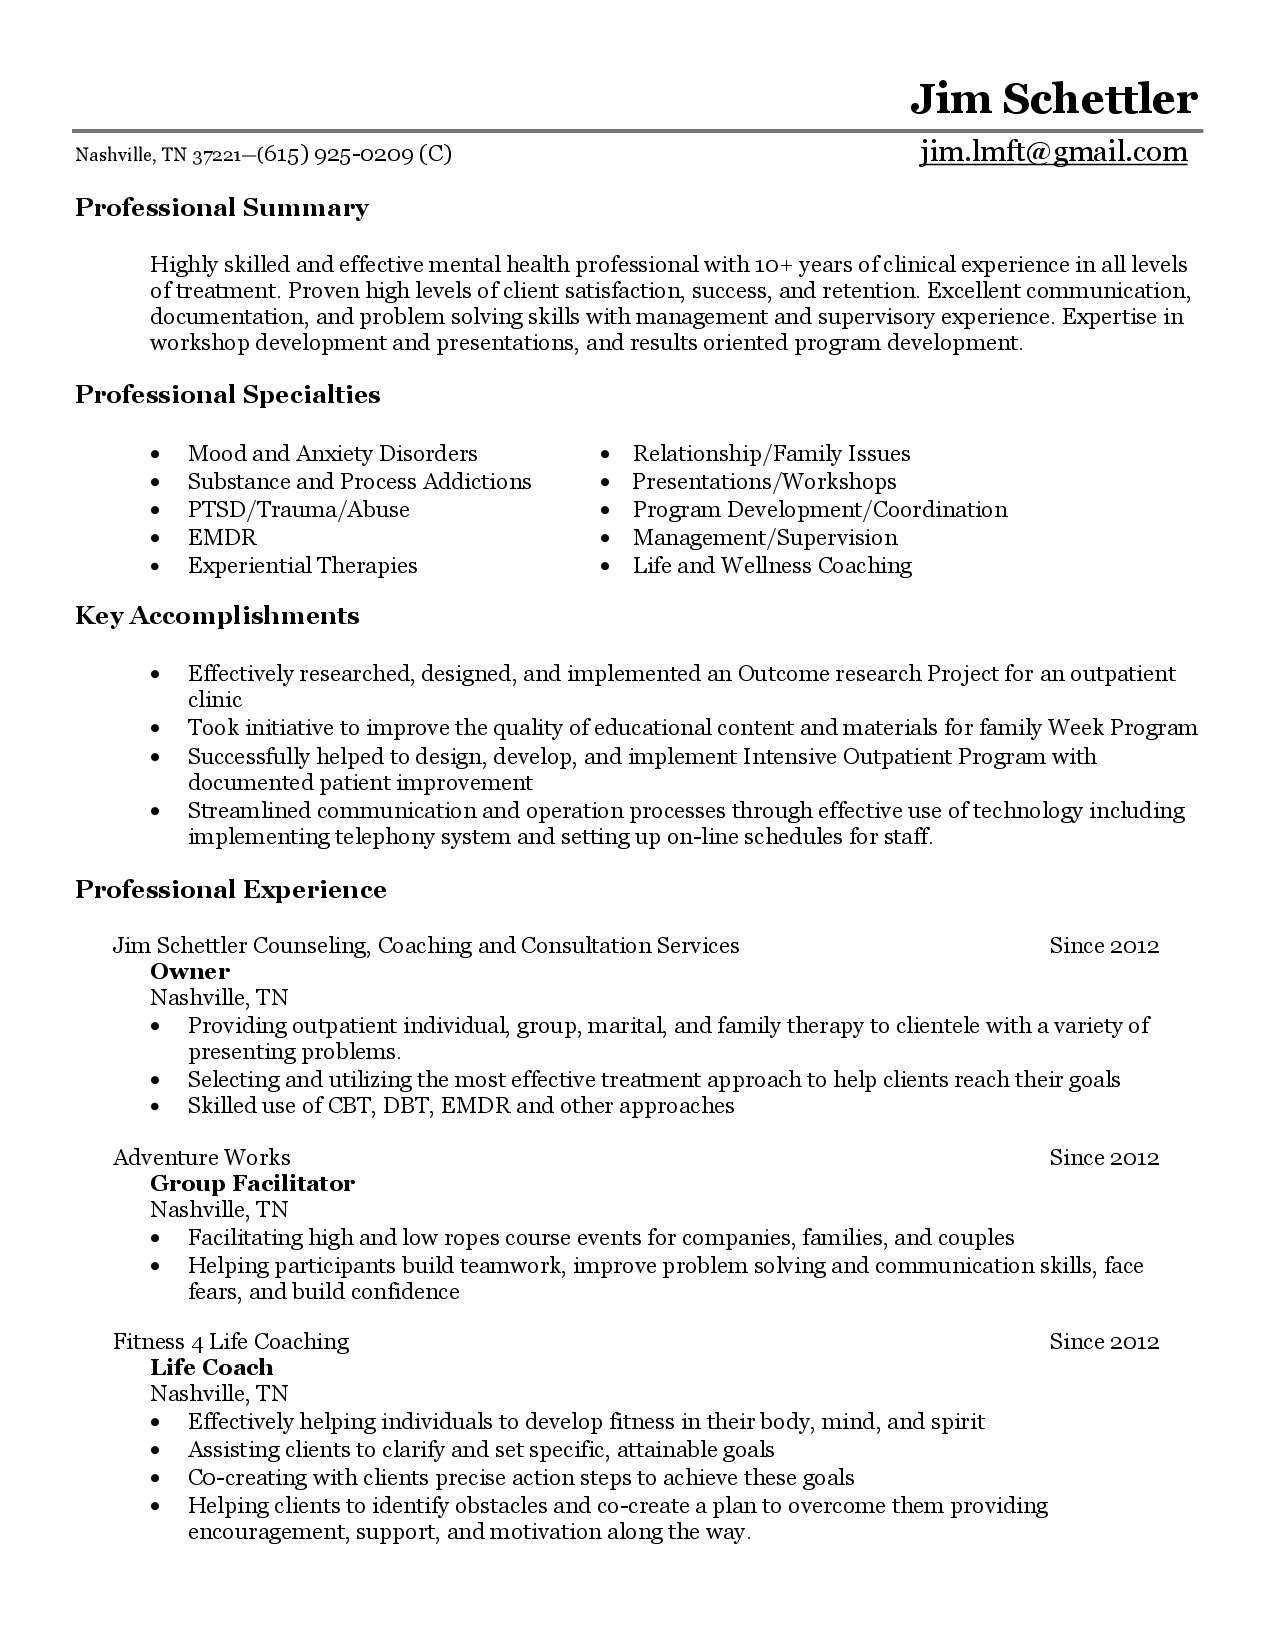 behavioral health counselor resume sample resumes behavioral health counselor resume sample